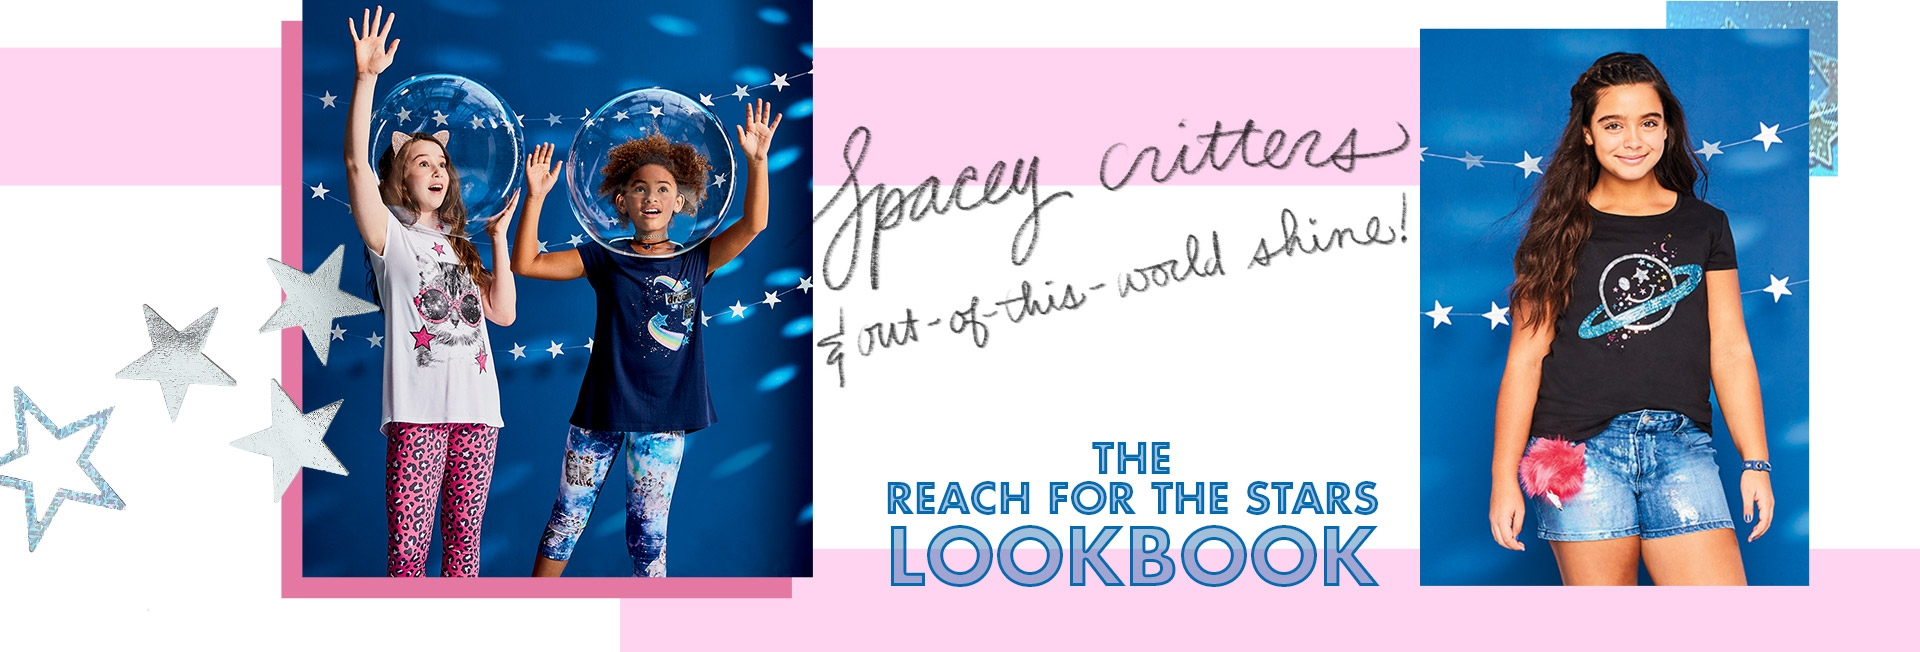 Explore the reach for the stars lookbook!